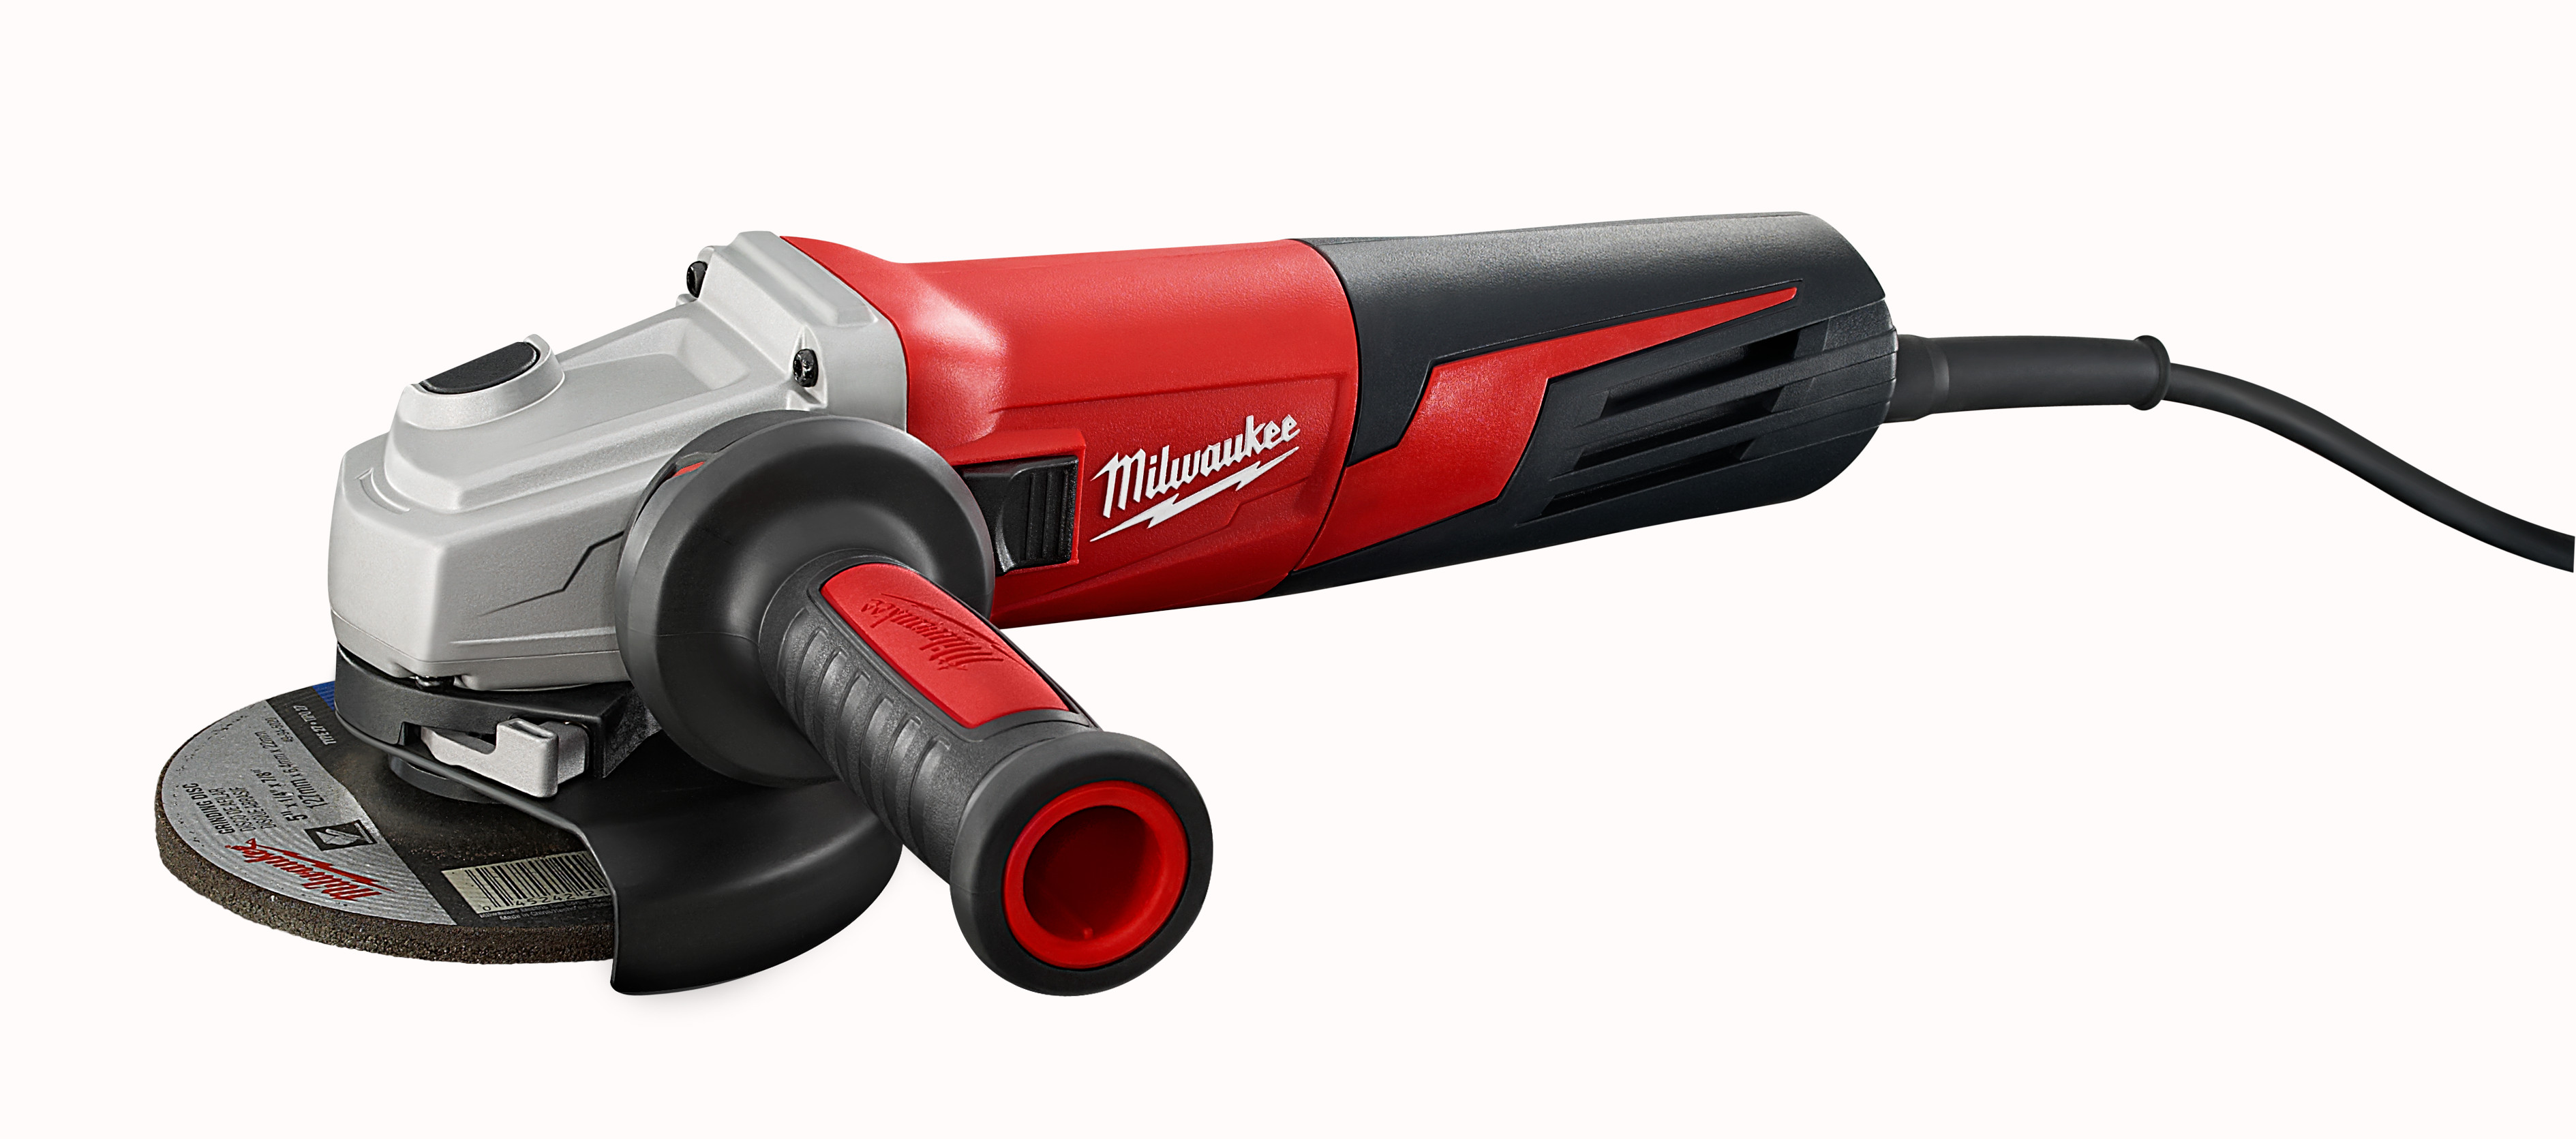 Milwaukee® 6117-33D Double Insulated Small Angle Grinder, 5 in Dia Wheel, 5/8-11 Arbor/Shank, 120 VAC, Black/Red